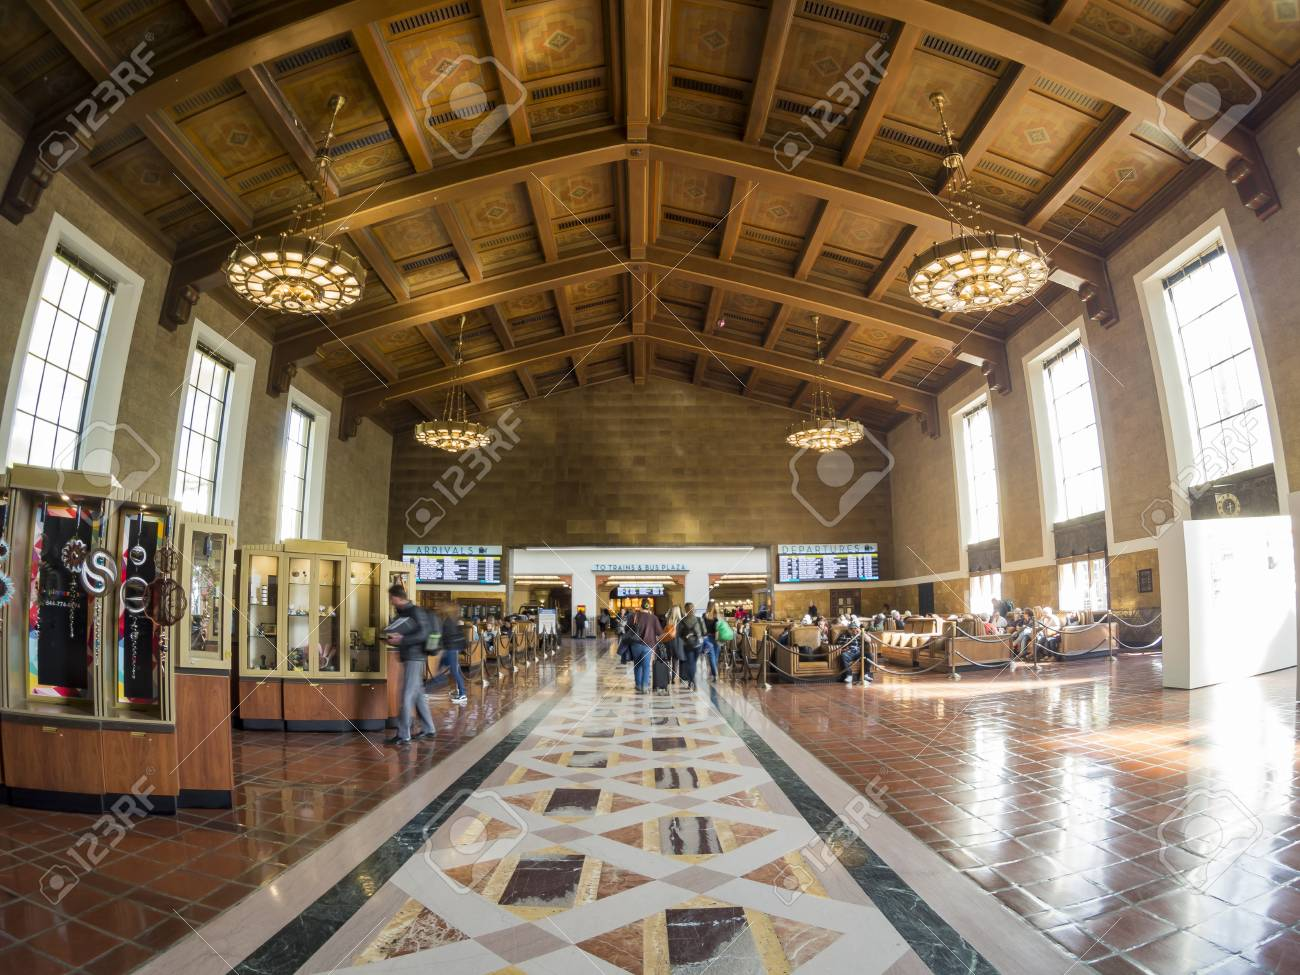 Los Angeles, MAR 3: Interior view of the famous Union Station